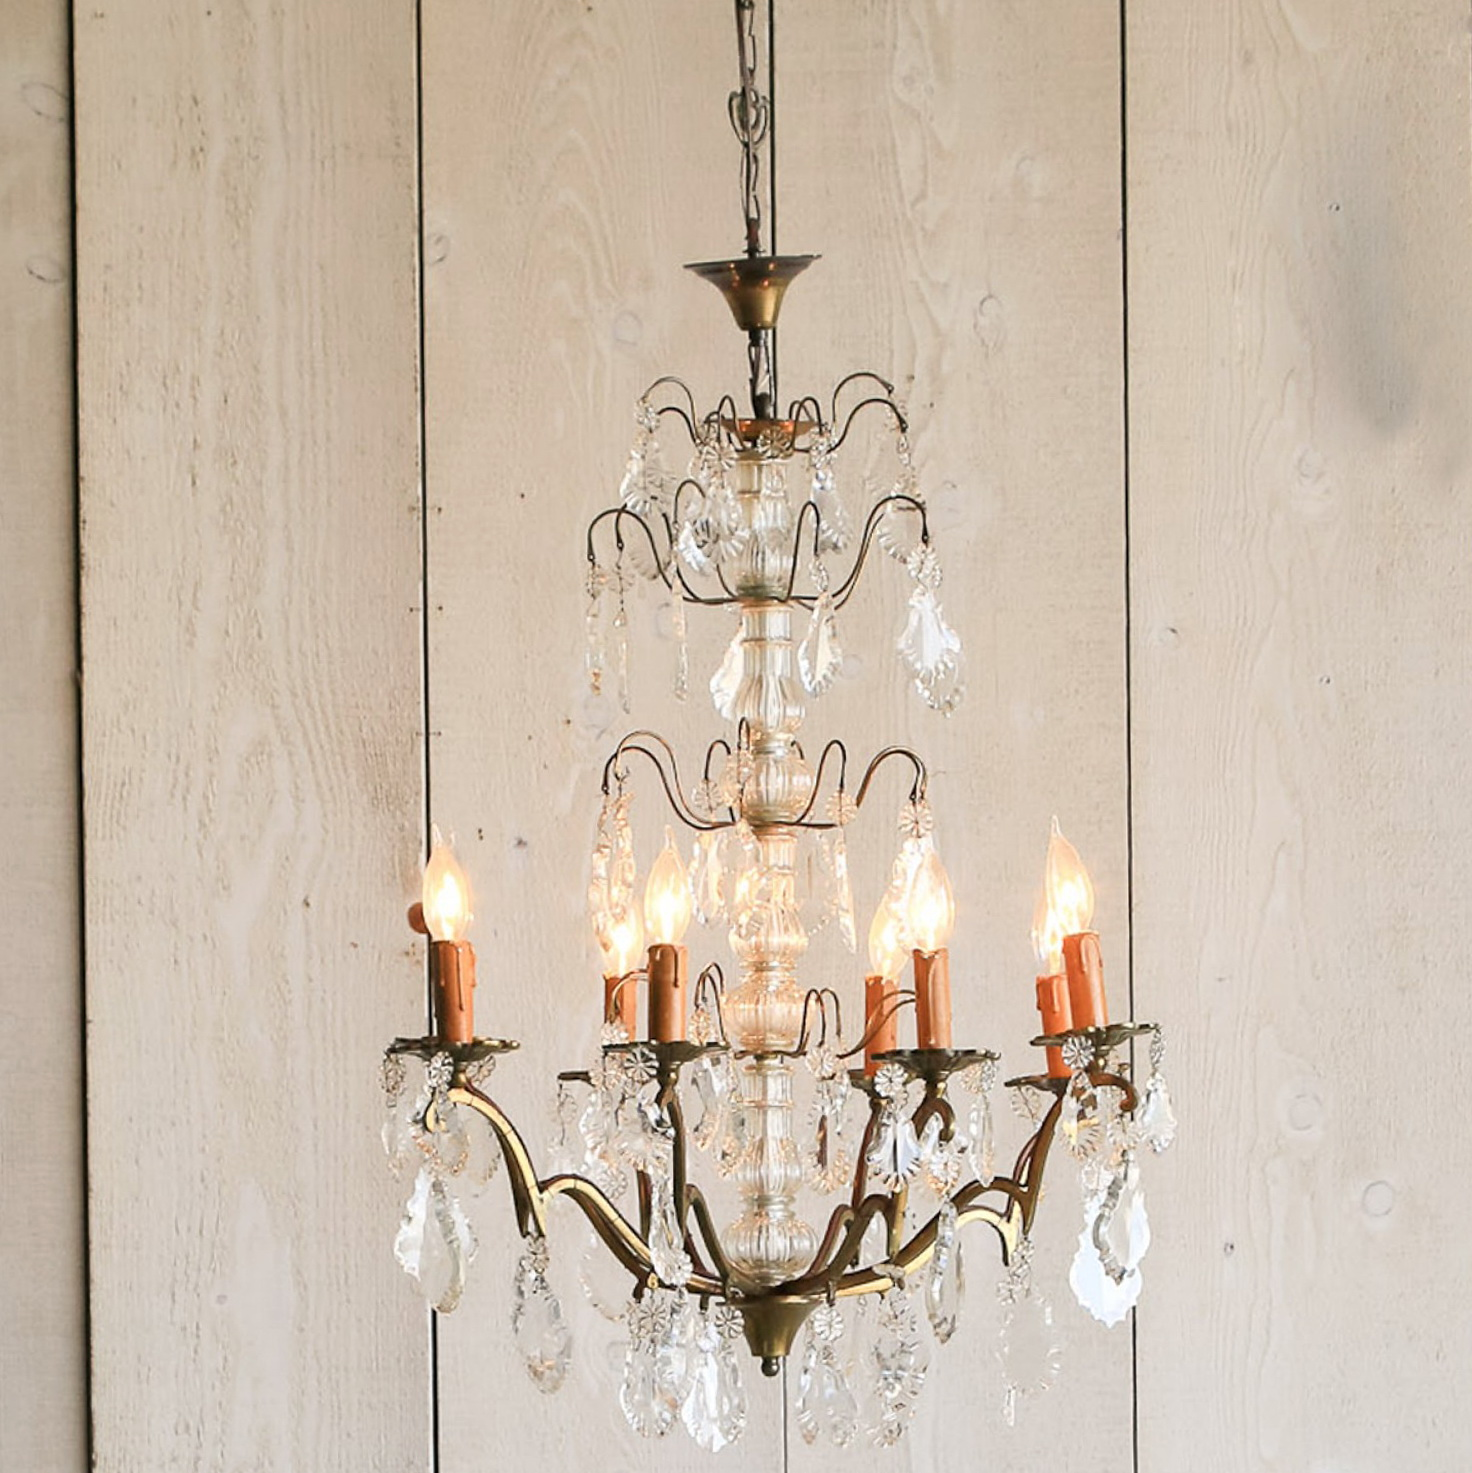 Vintage brass chandeliers sale home design ideas - Chandeliers on sale online ...